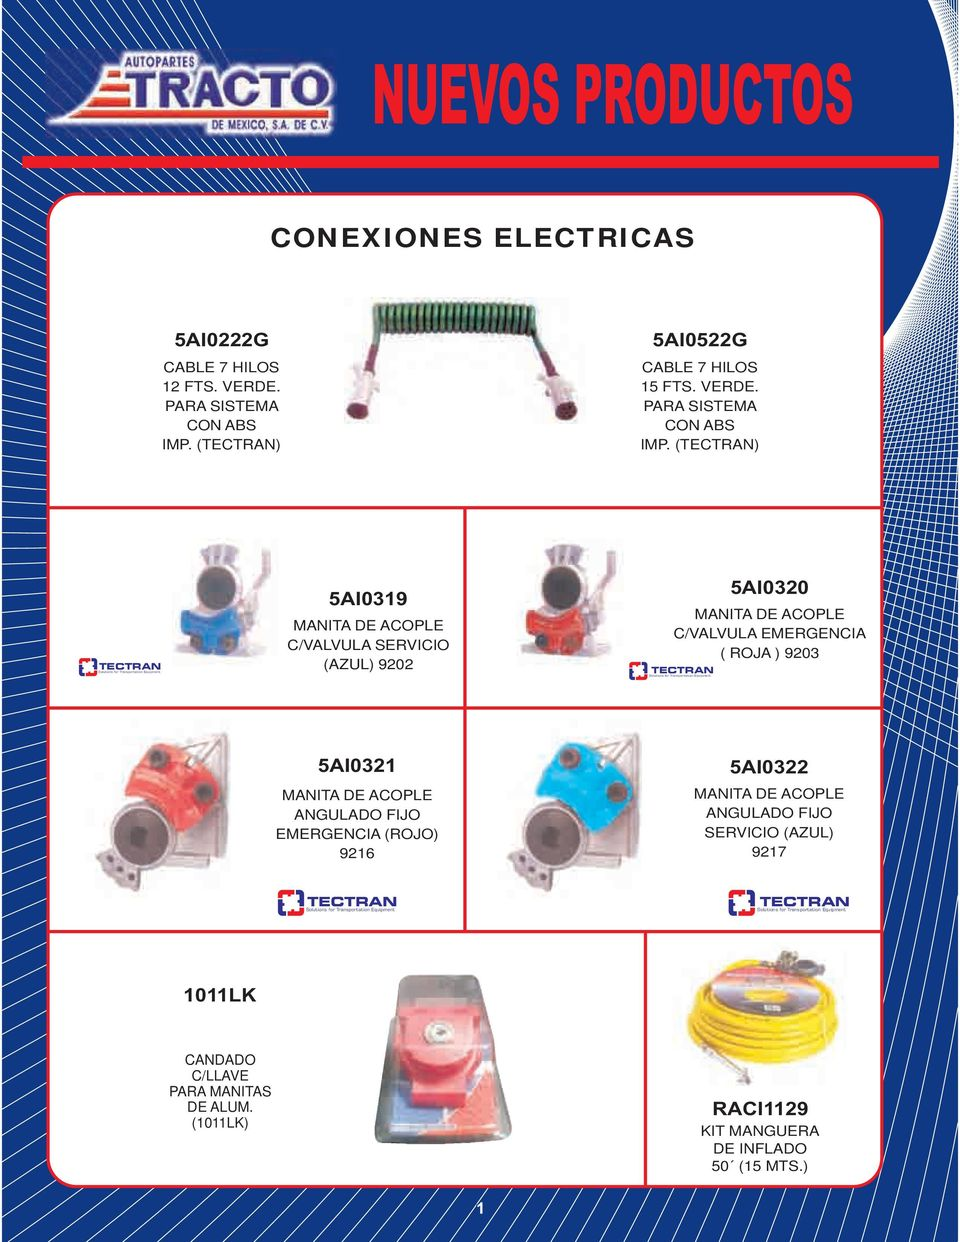 (TECTRAN) TECTRAN Solutions for Transportation Equipment 5AI0319 MANITA DE ACOPLE C/VALVULA SERVICIO (AZUL) 9202 5AI0320 MANITA DE ACOPLE C/VALVULA EMERGENCIA ( ROJA ) 9203